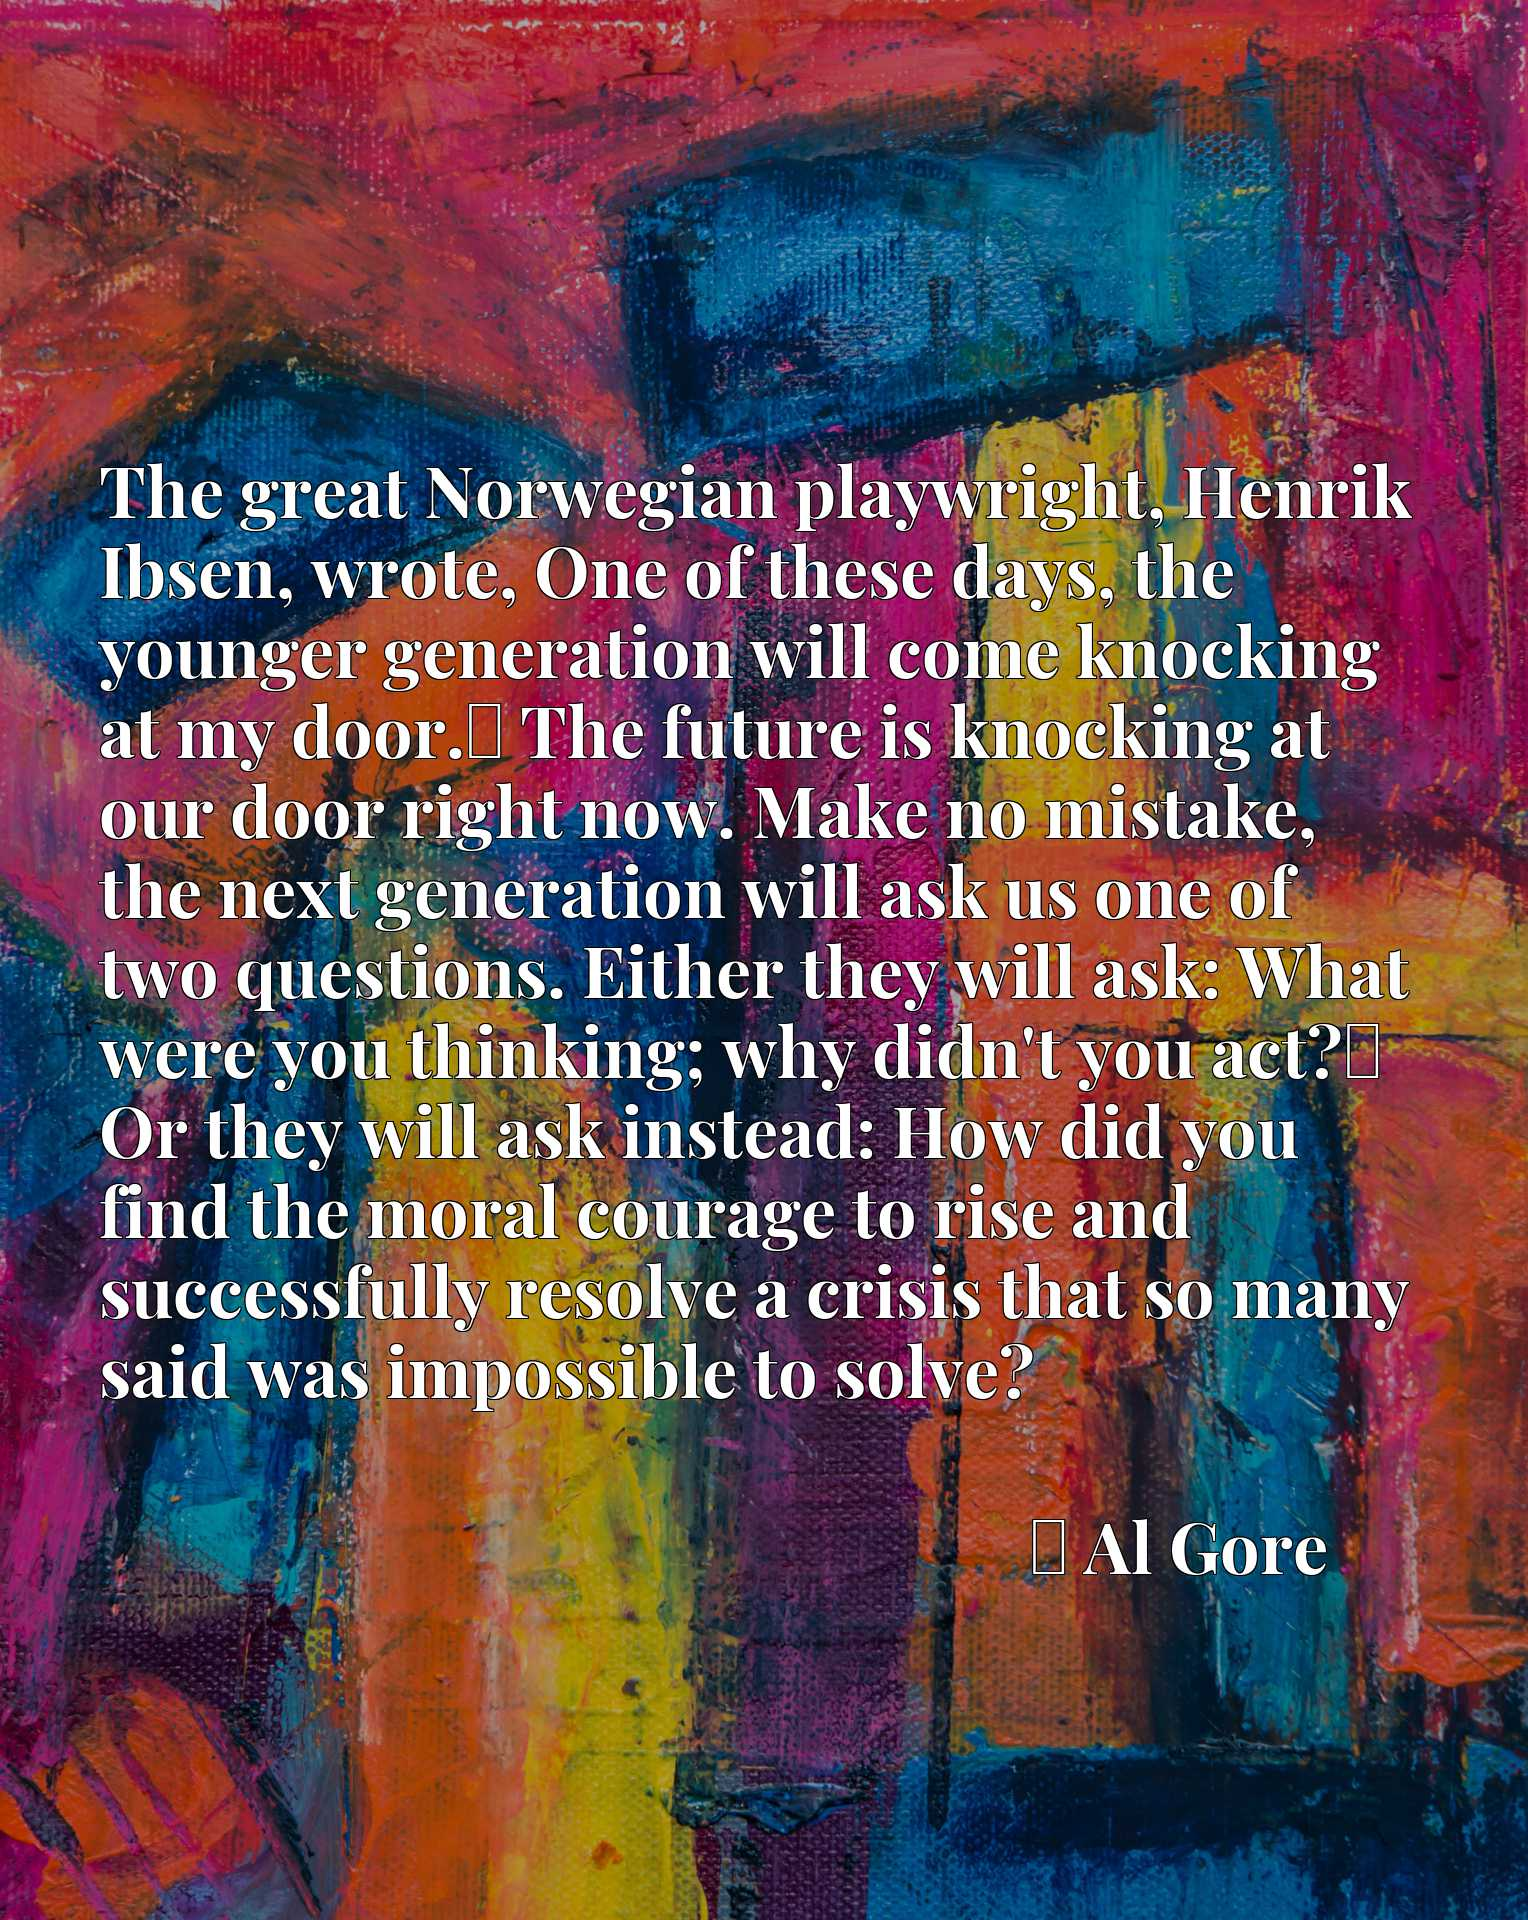 The great Norwegian playwright, Henrik Ibsen, wrote, One of these days, the younger generation will come knocking at my door.x9d The future is knocking at our door right now. Make no mistake, the next generation will ask us one of two questions. Either they will ask: What were you thinking; why didn't you act?x9d Or they will ask instead: How did you find the moral courage to rise and successfully resolve a crisis that so many said was impossible to solve?